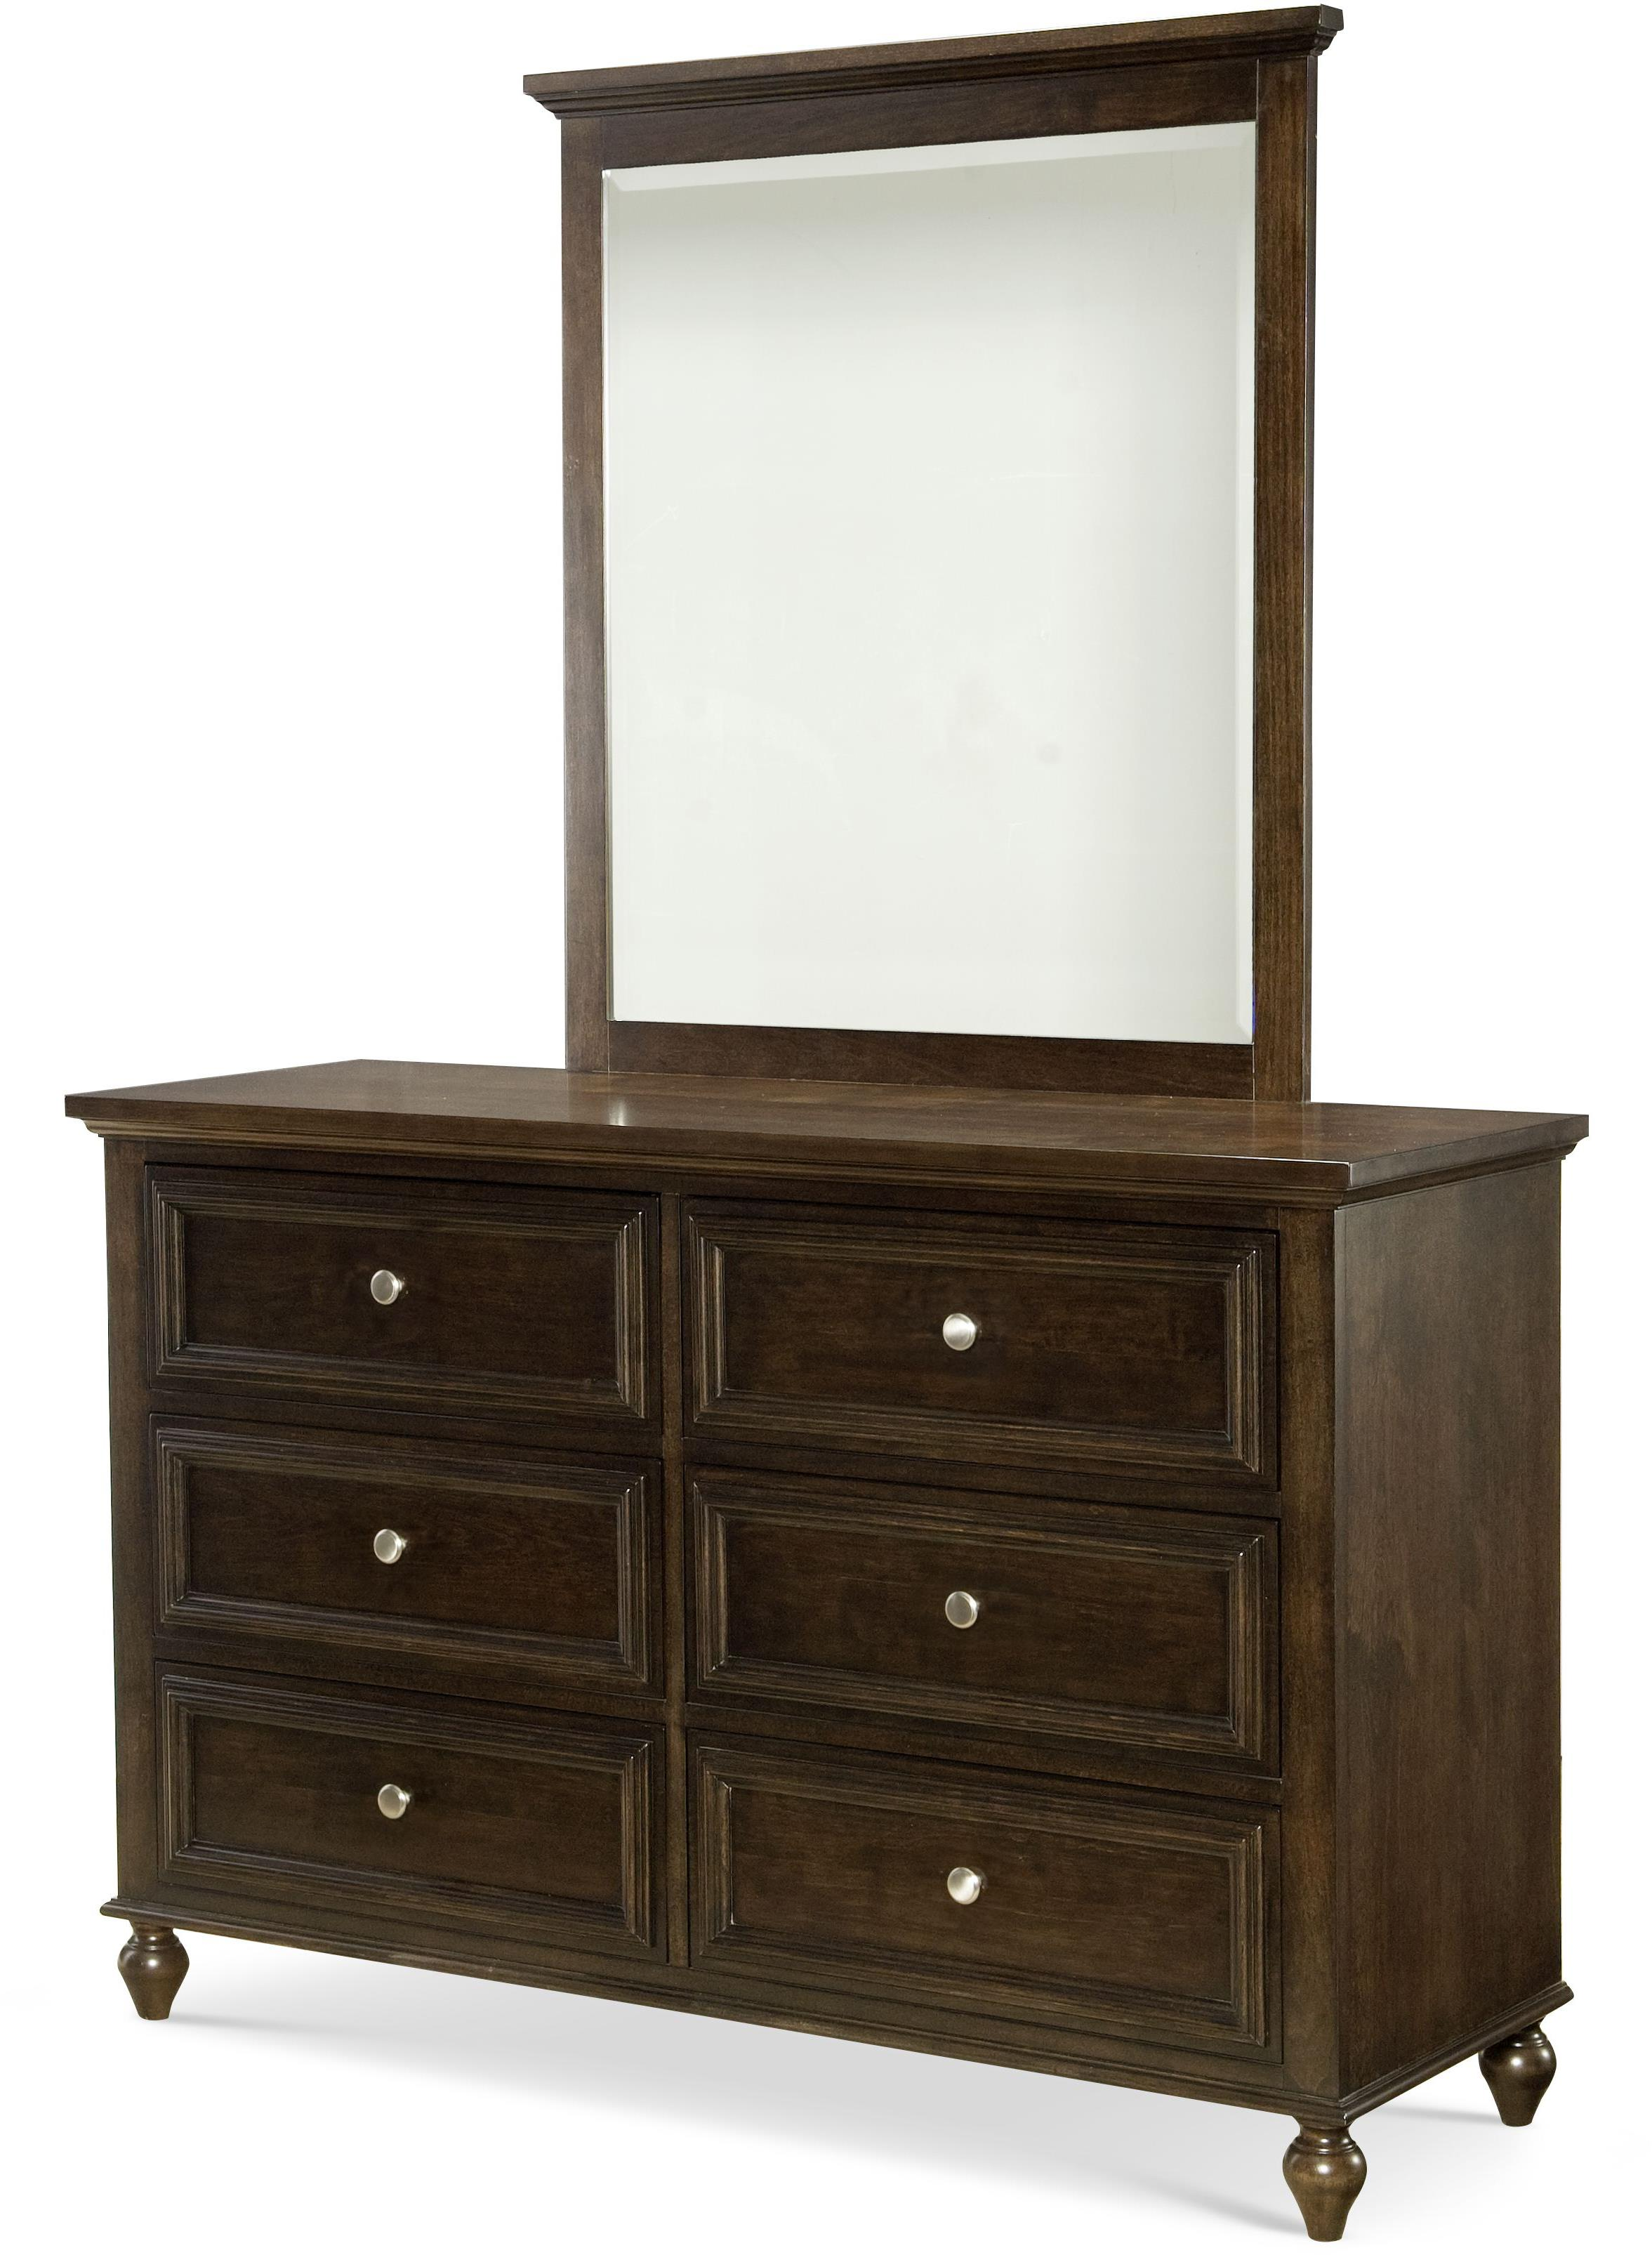 Legacy Classic Kids Academy Dresser and Mirror Set - Item Number: 5810-1100+0100